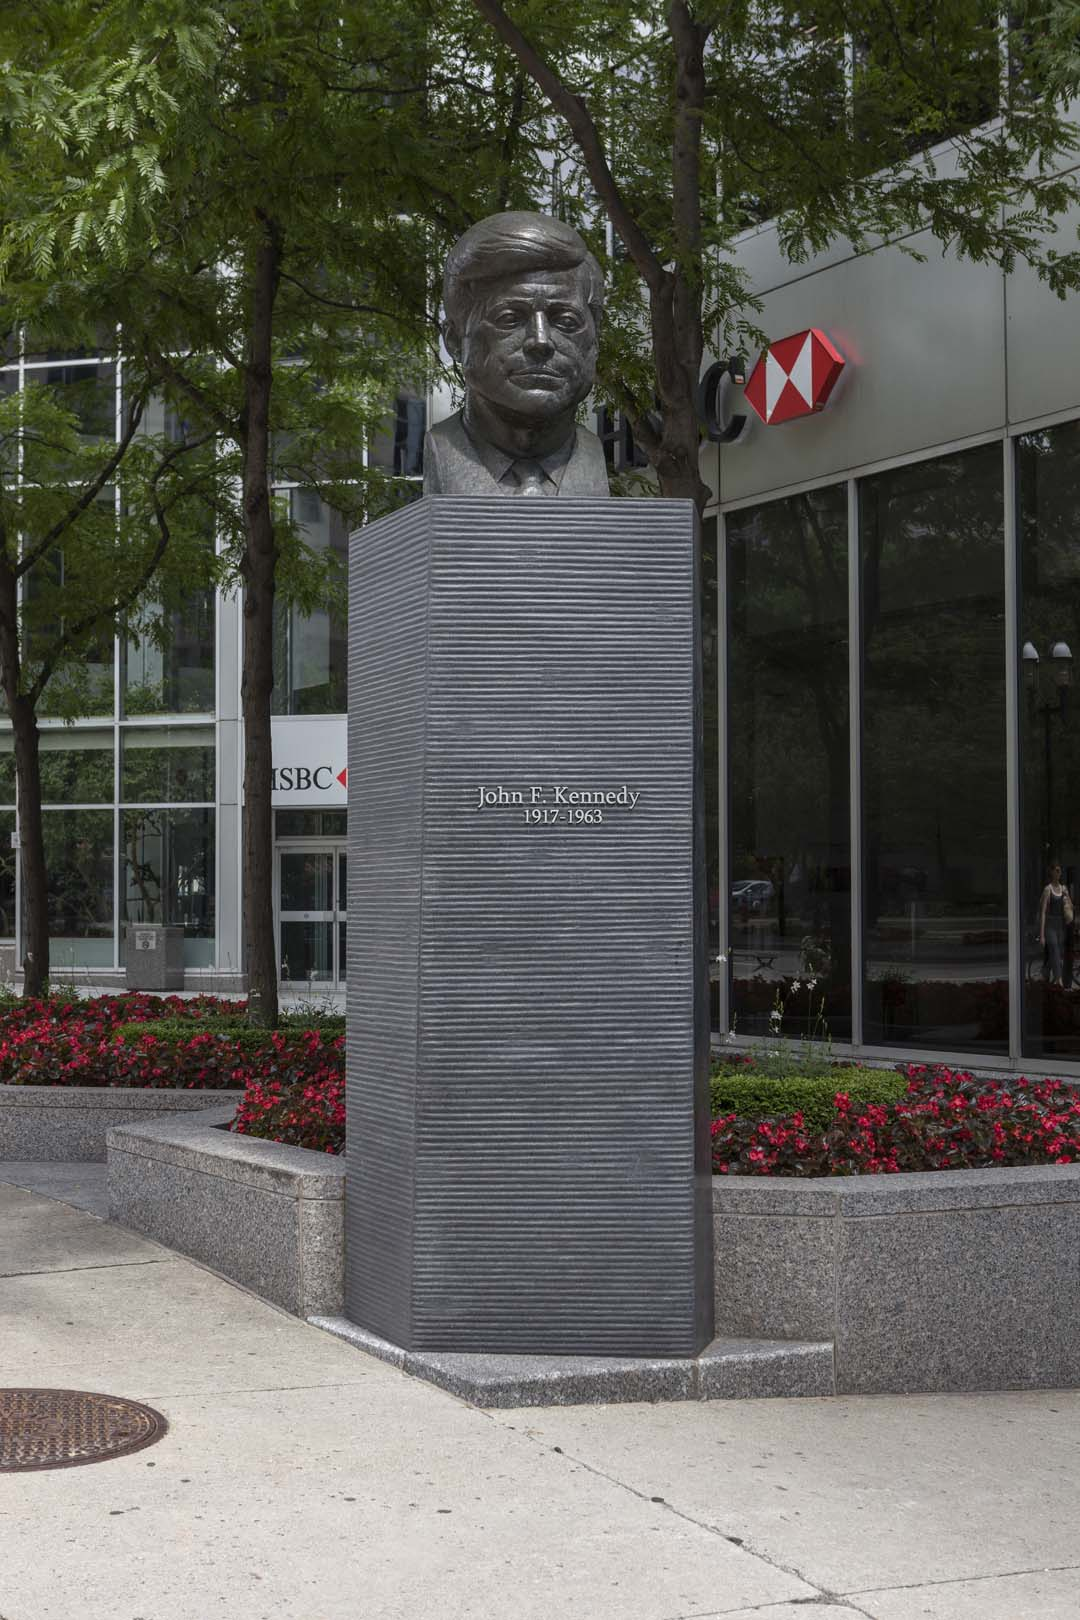 Monument à John F. Kennedy, Paul Lancz